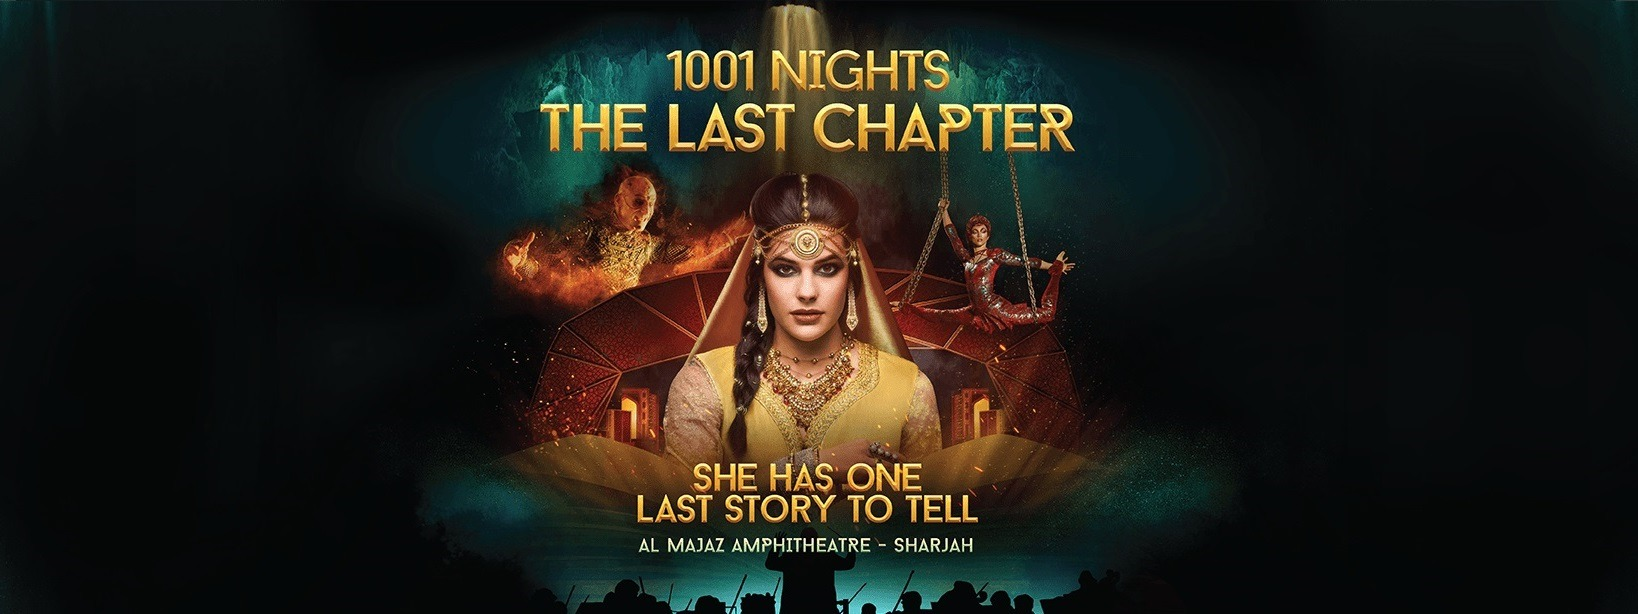 1001 Nights, The Last Chapter - Coming Soon in UAE